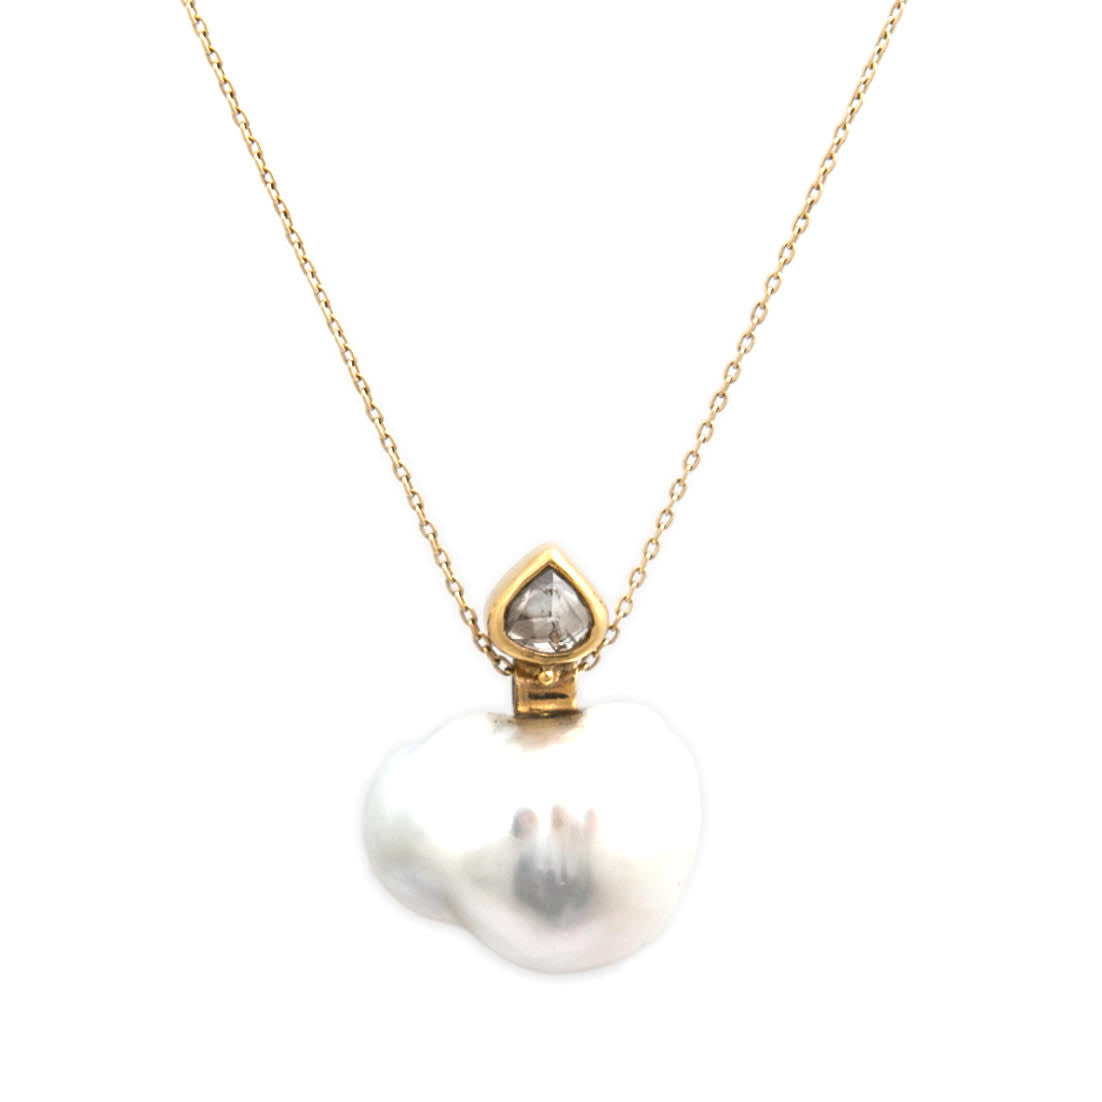 cultured cttw chain pendant yellow pearl diamond necklace com dp black jewelry amazon freshwater gold